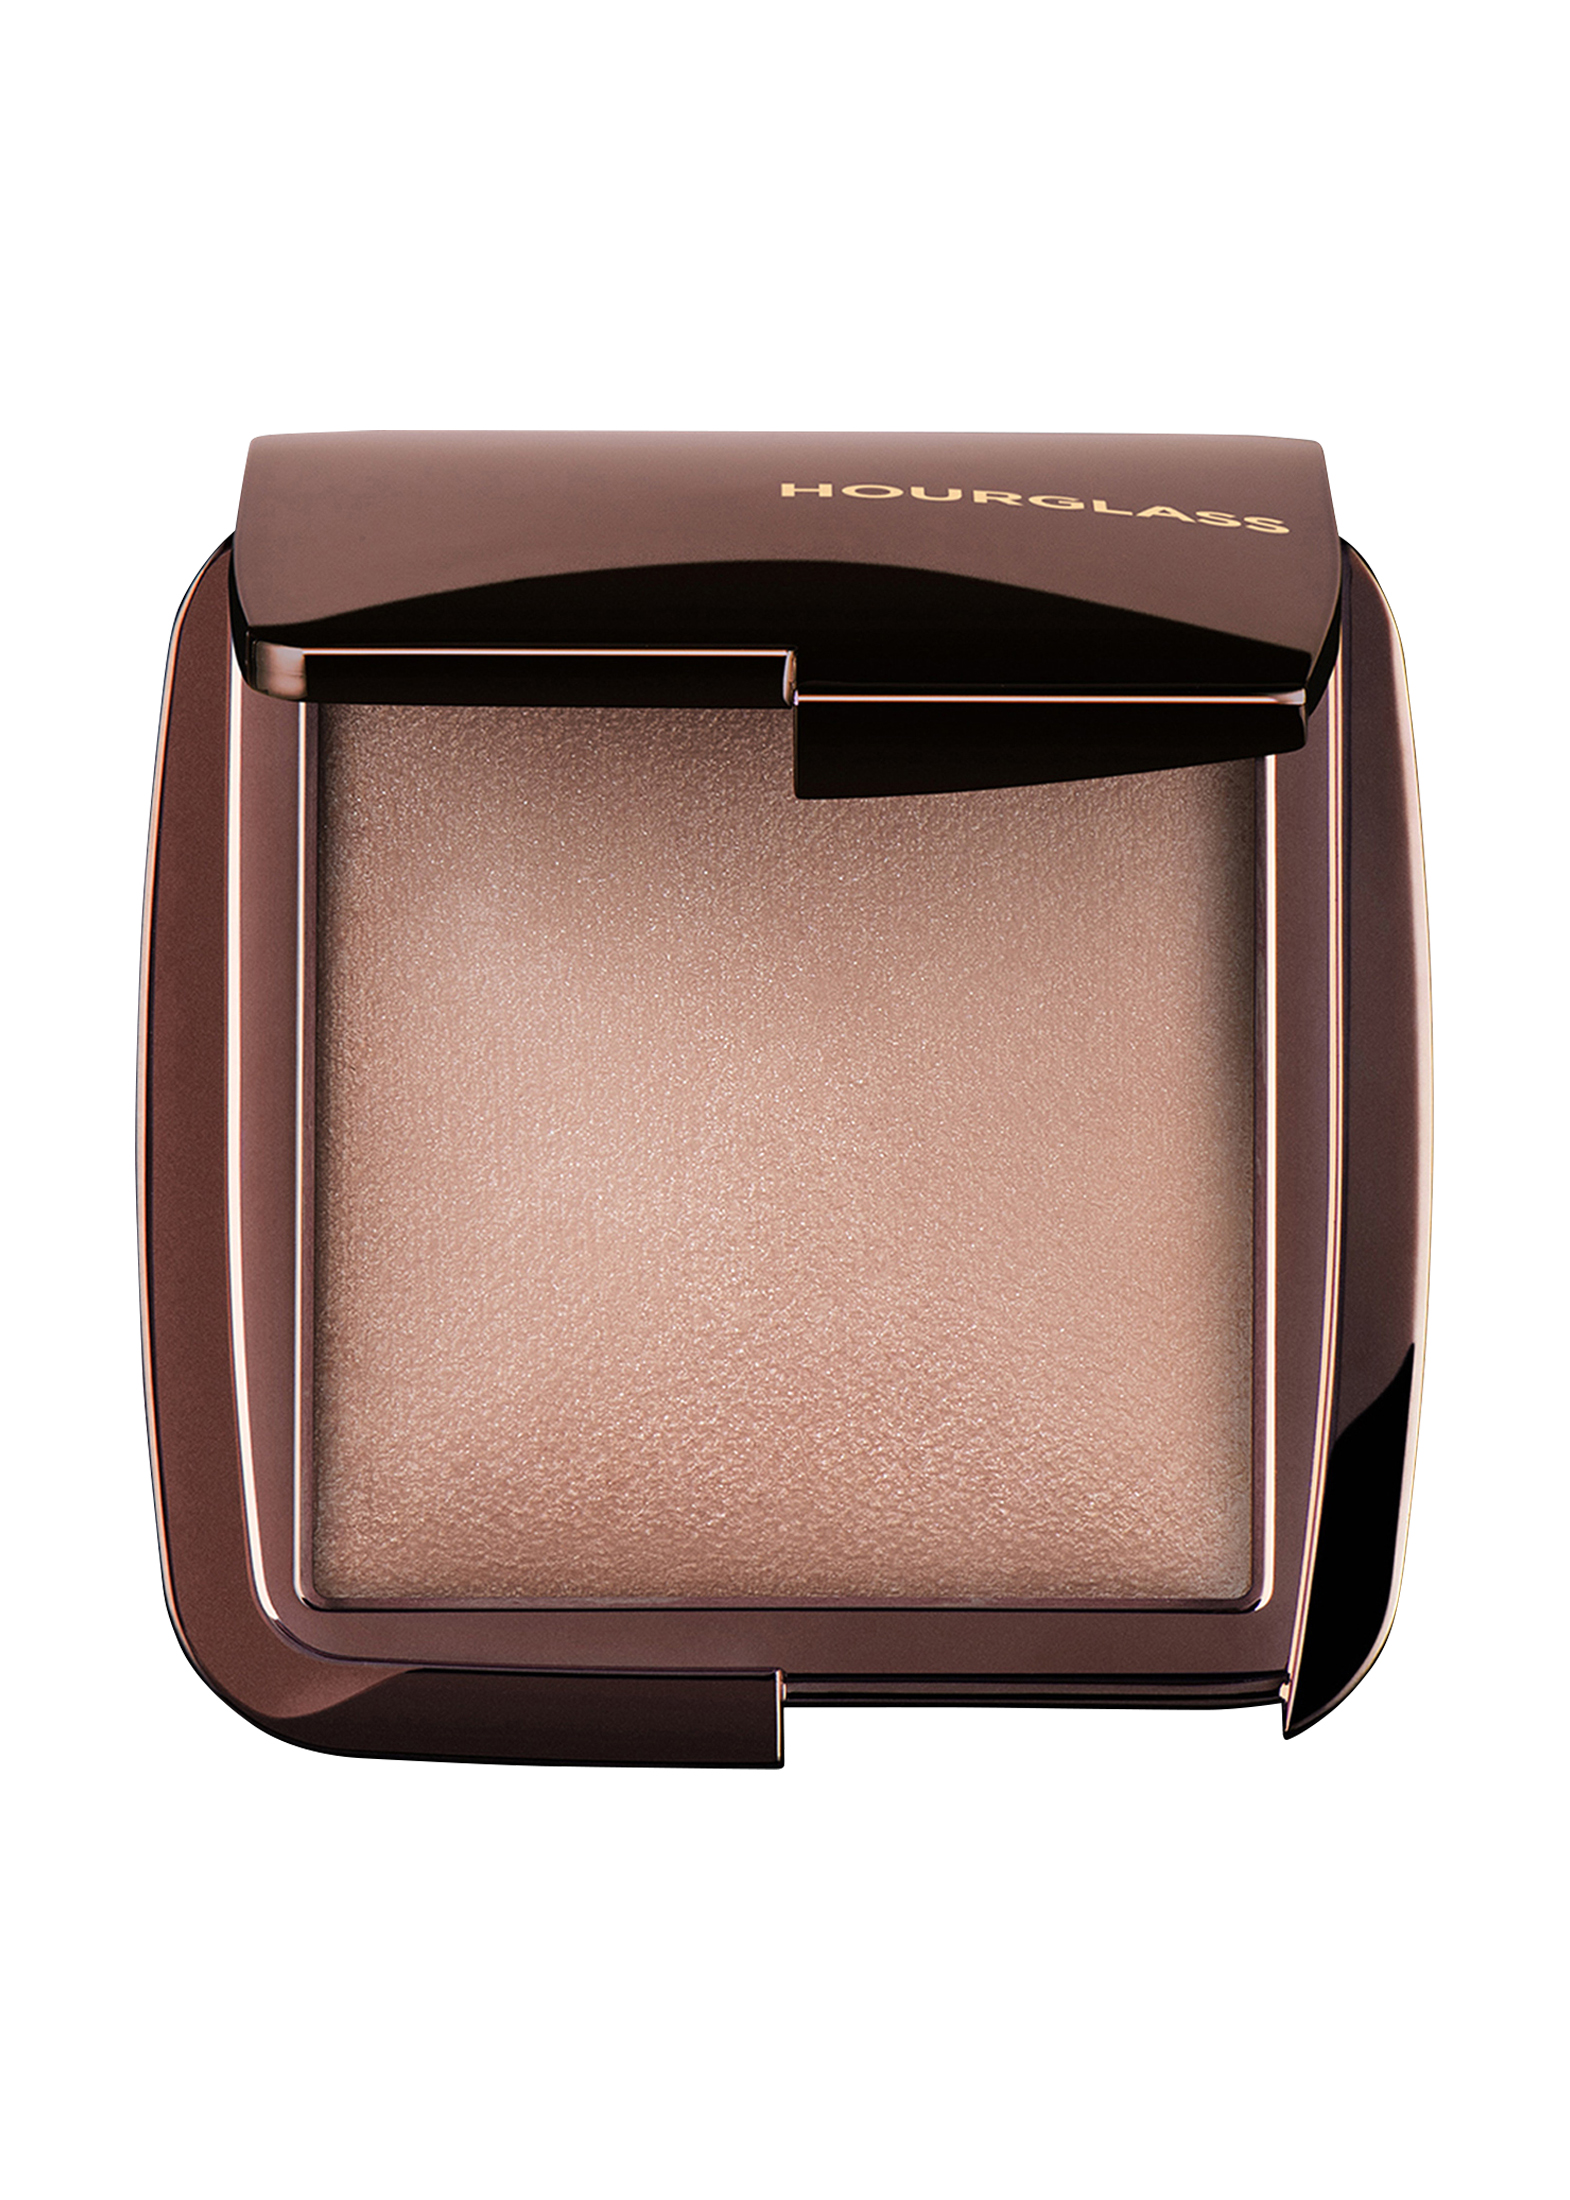 AMBIENT LIGHTING POWDER, DIFFUSED LIGHT image number 0